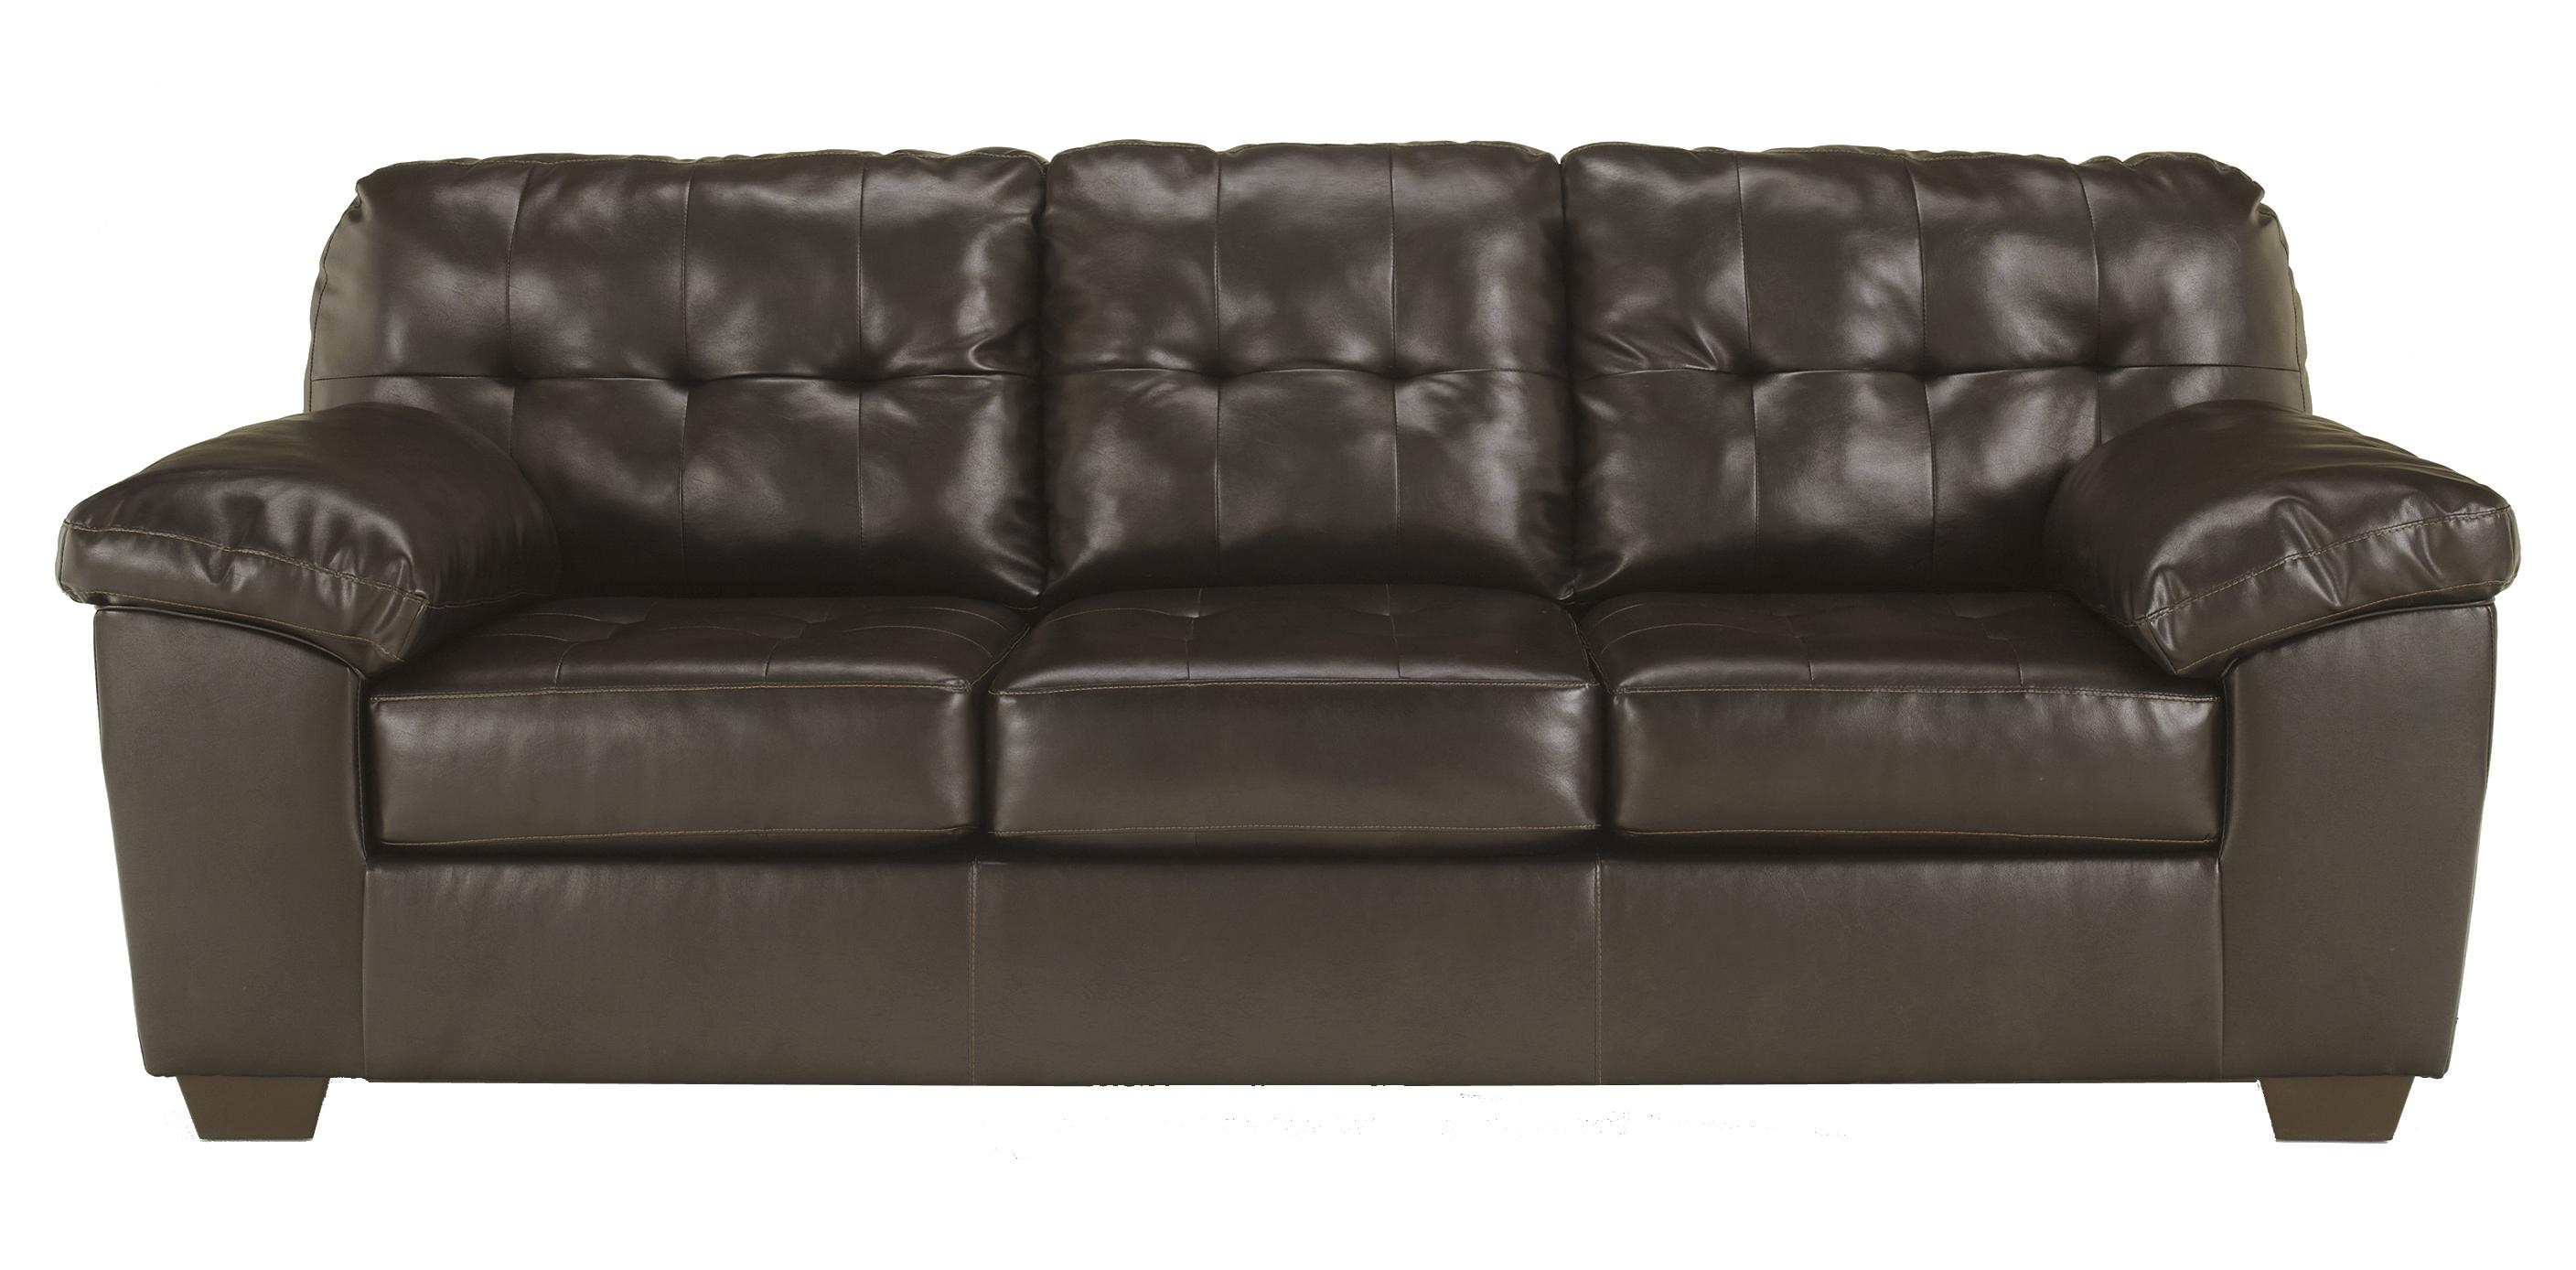 Signature Design By Ashley Alliston DuraBlend® - Chocolate Queen Sofa  Sleeper - Item Number: